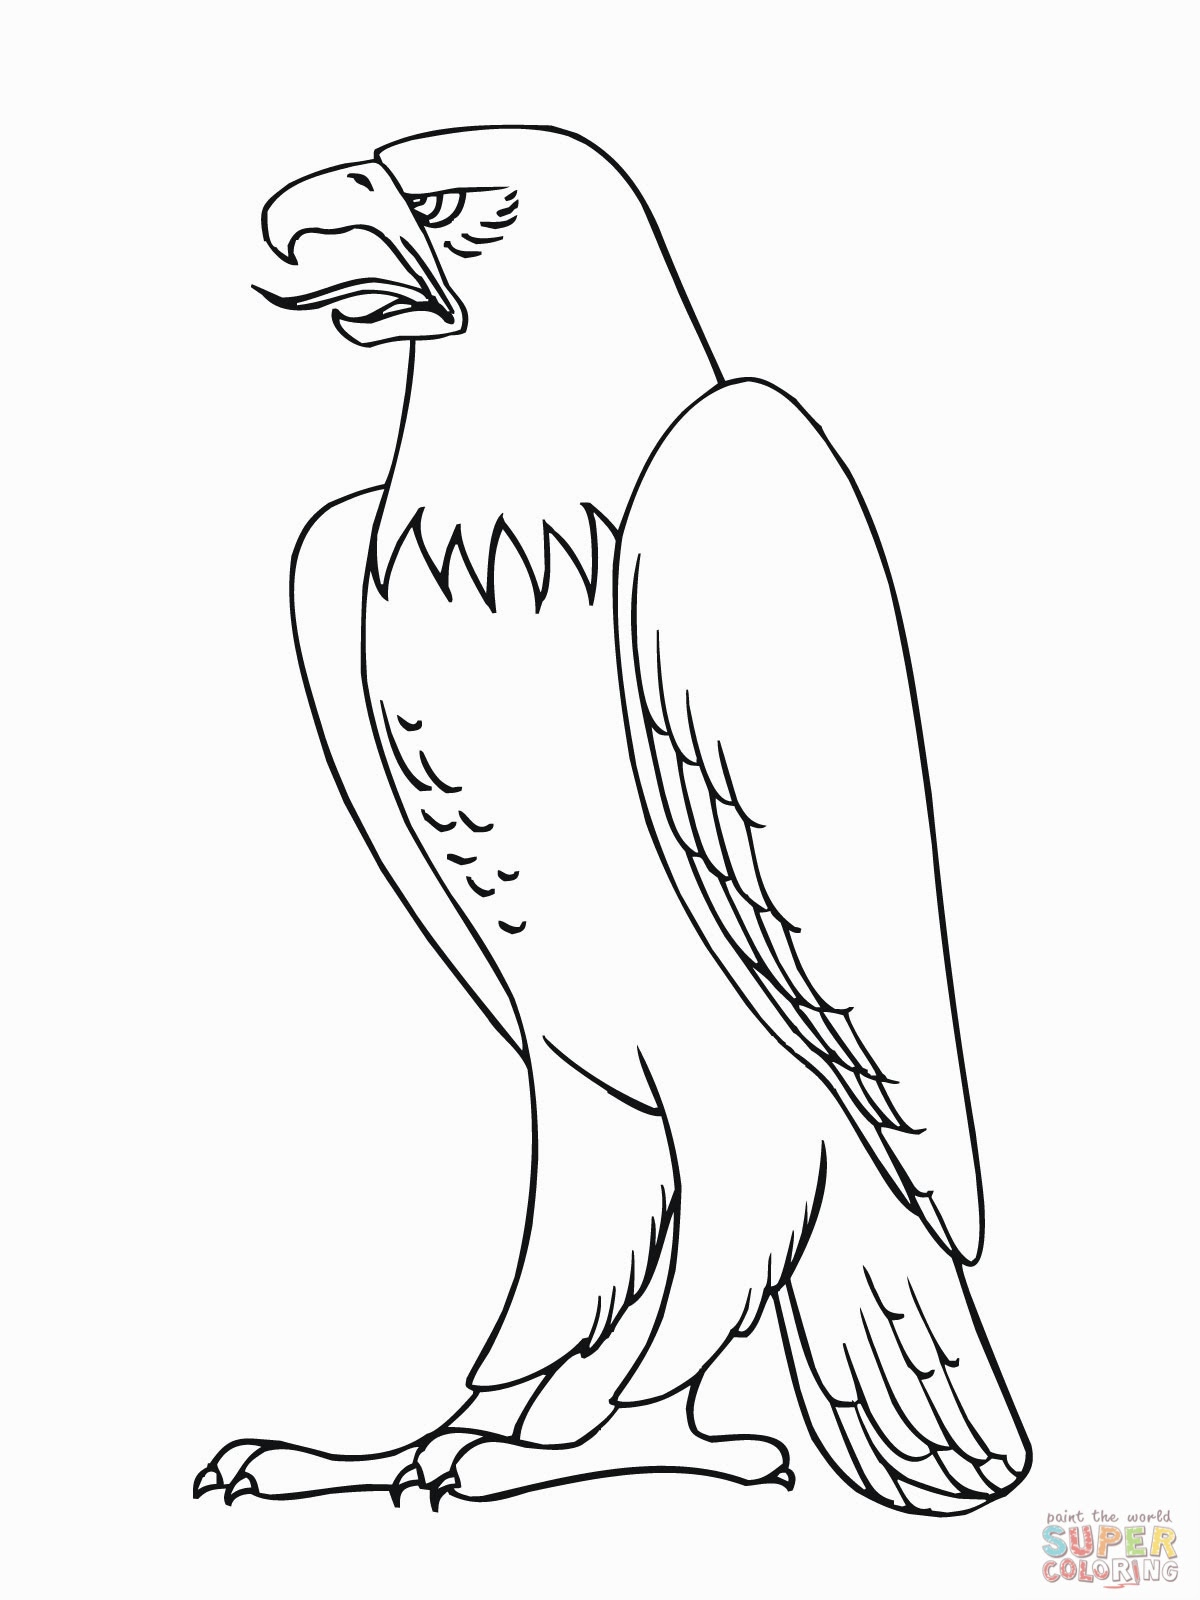 Rules of the Jungle: Printable Pictures of Bald Eagle